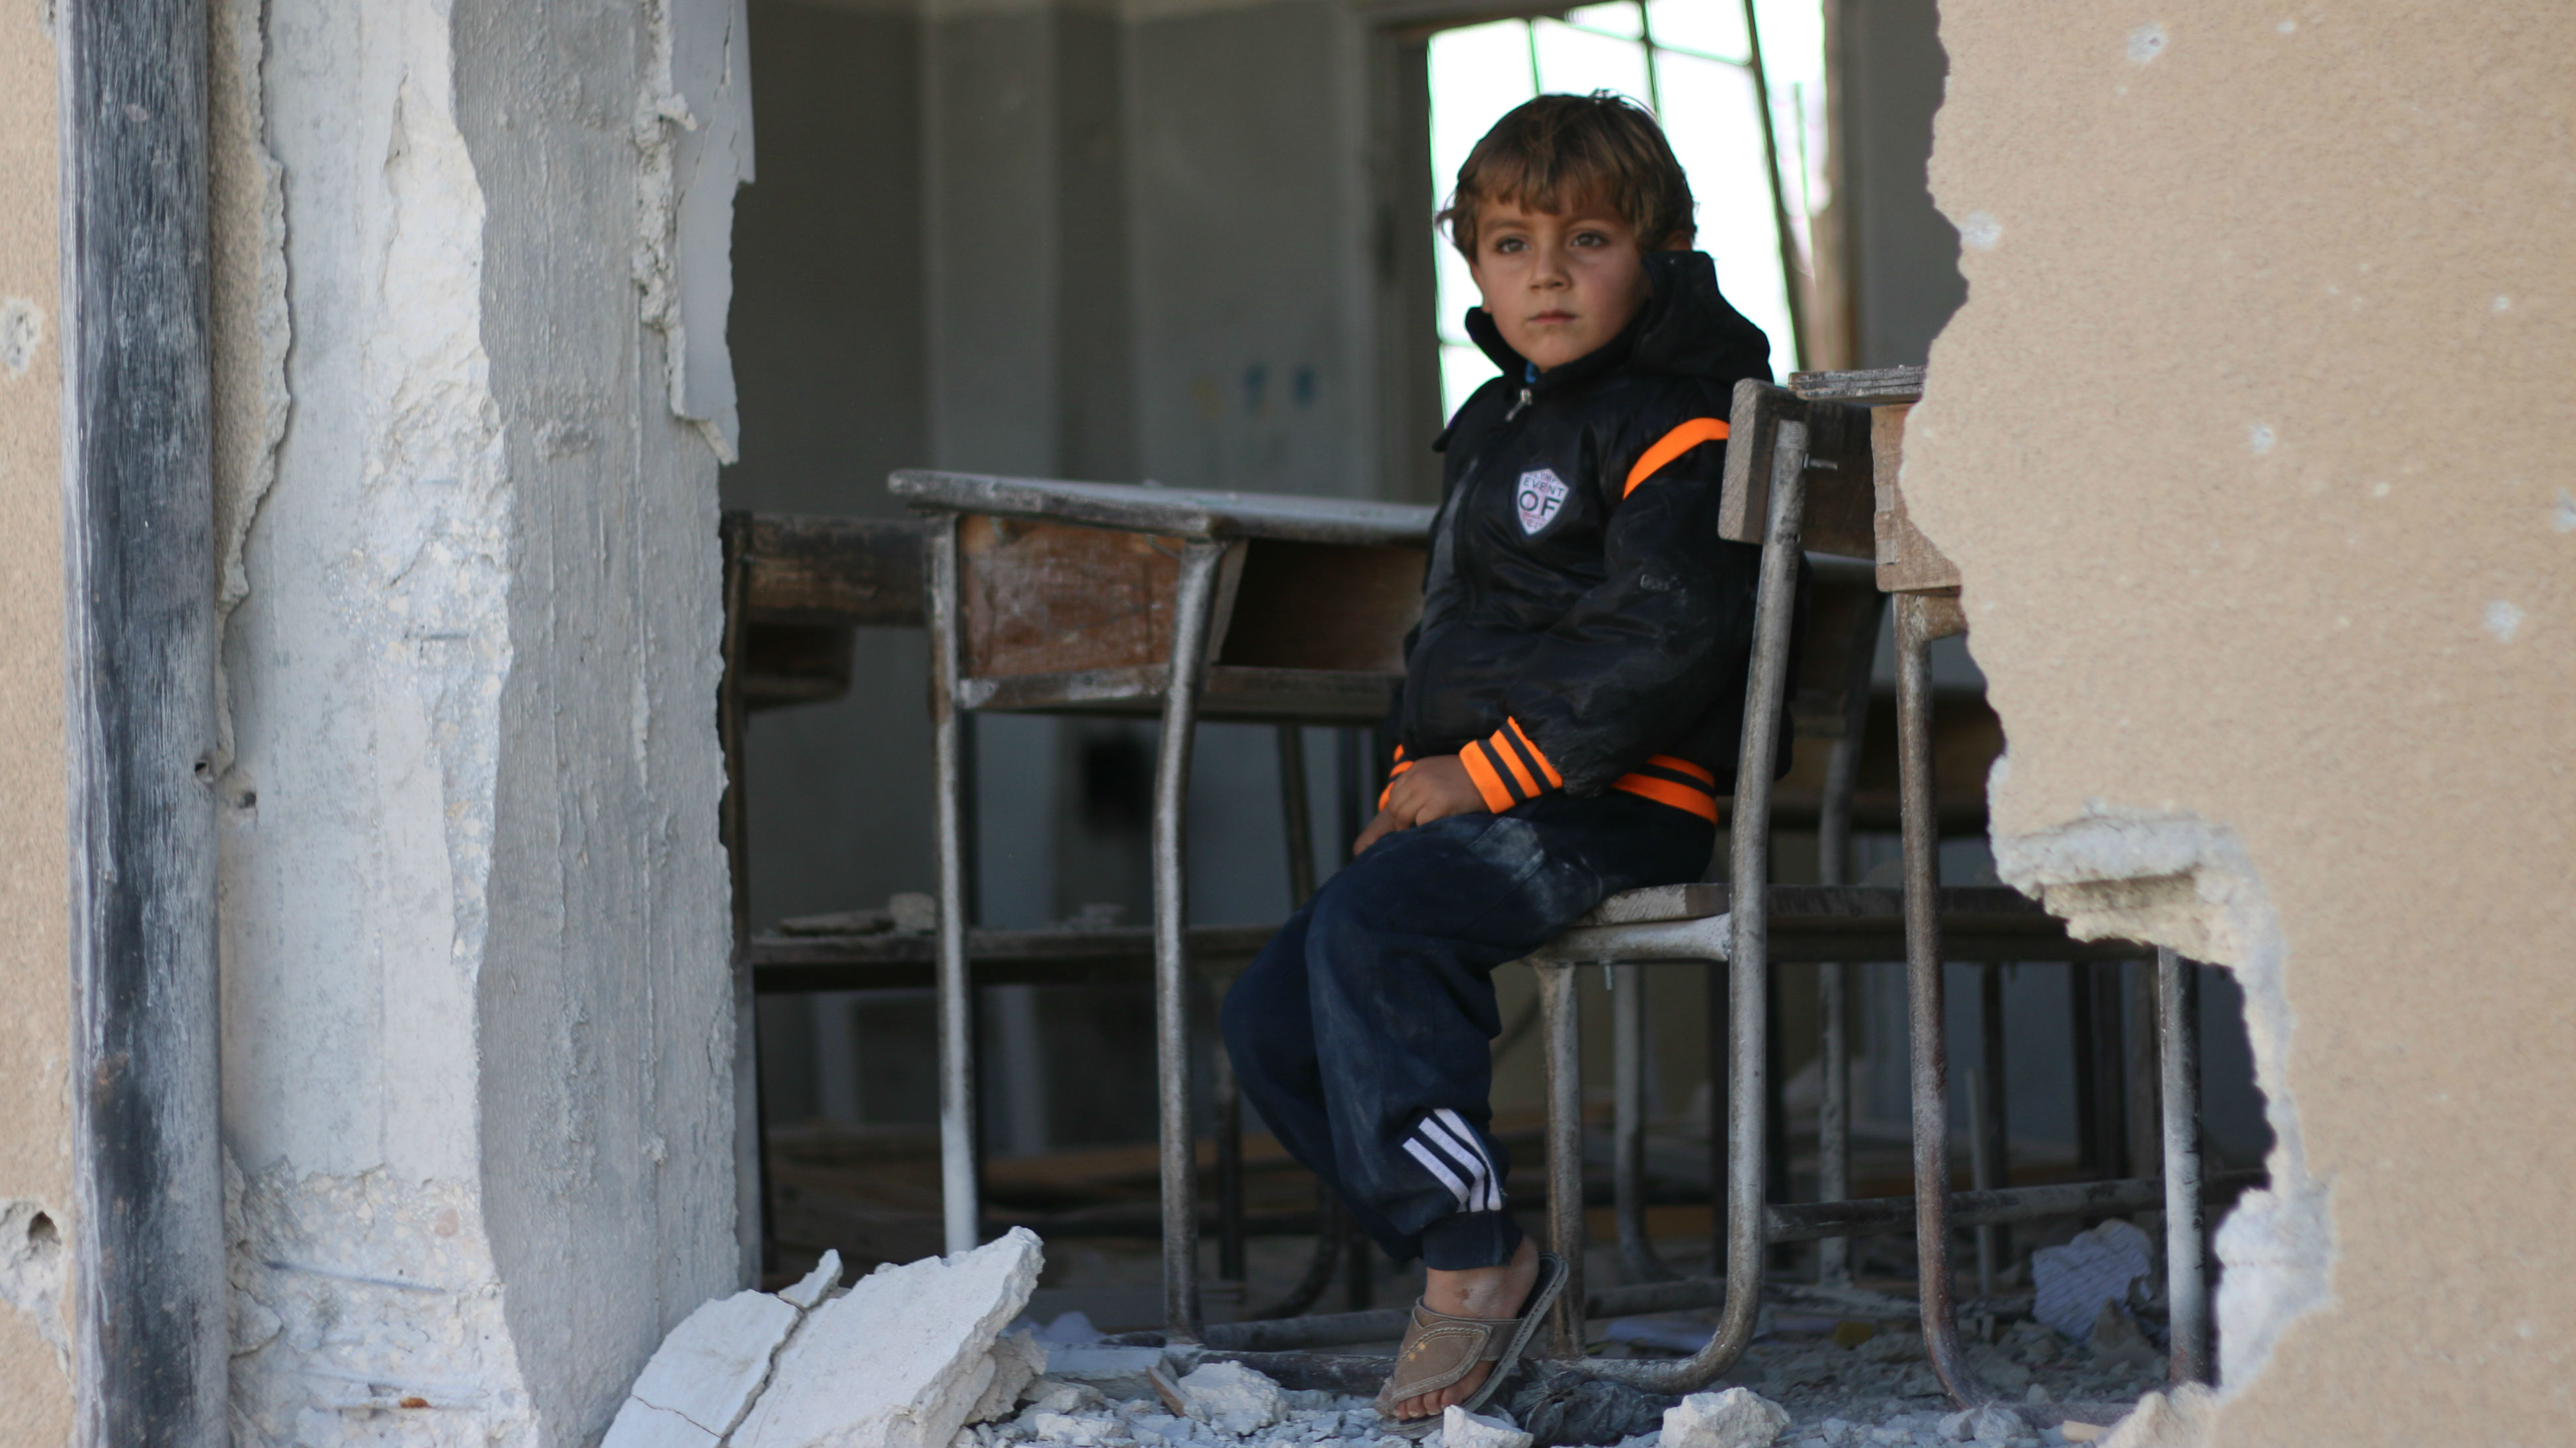 caterpillar shoes helsinki syndrome hostages rescued in syria